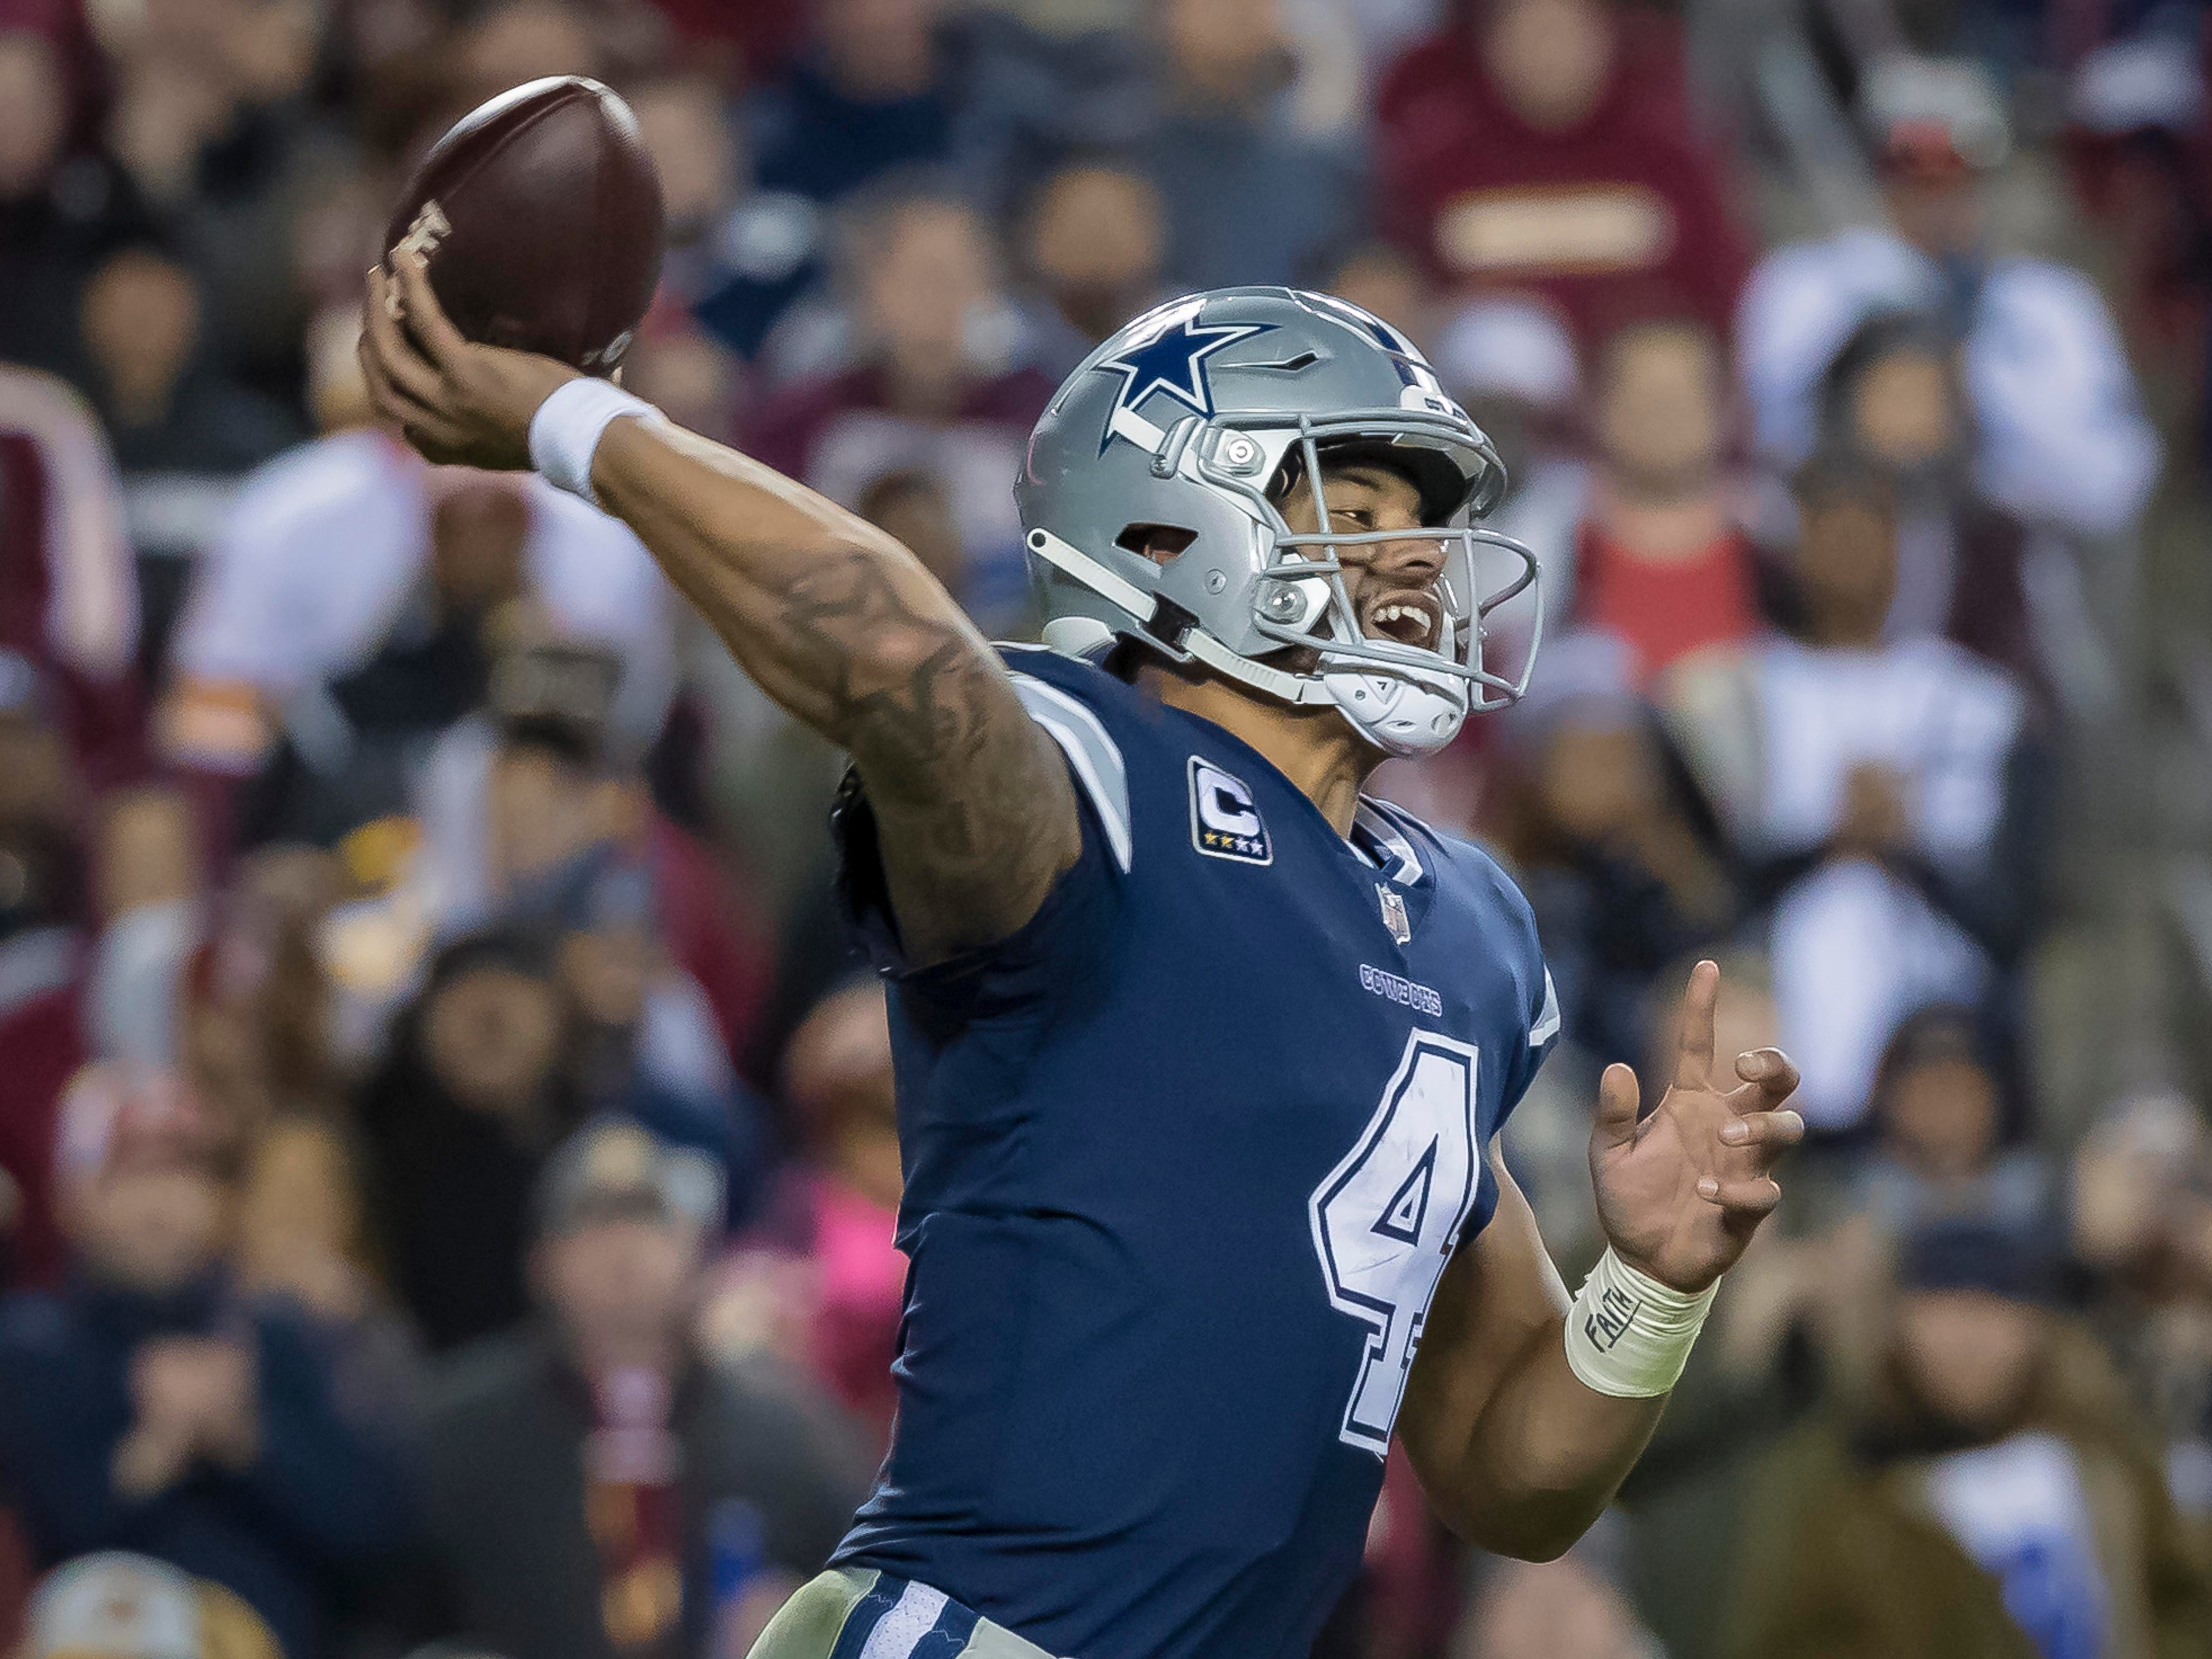 18. Cowboys (18): Treat — Dak Prescott finally has a No. 1 receiver with Amari Cooper set for Dallas debut. Wait, did Gruden just pull dirty trick on Jerry?